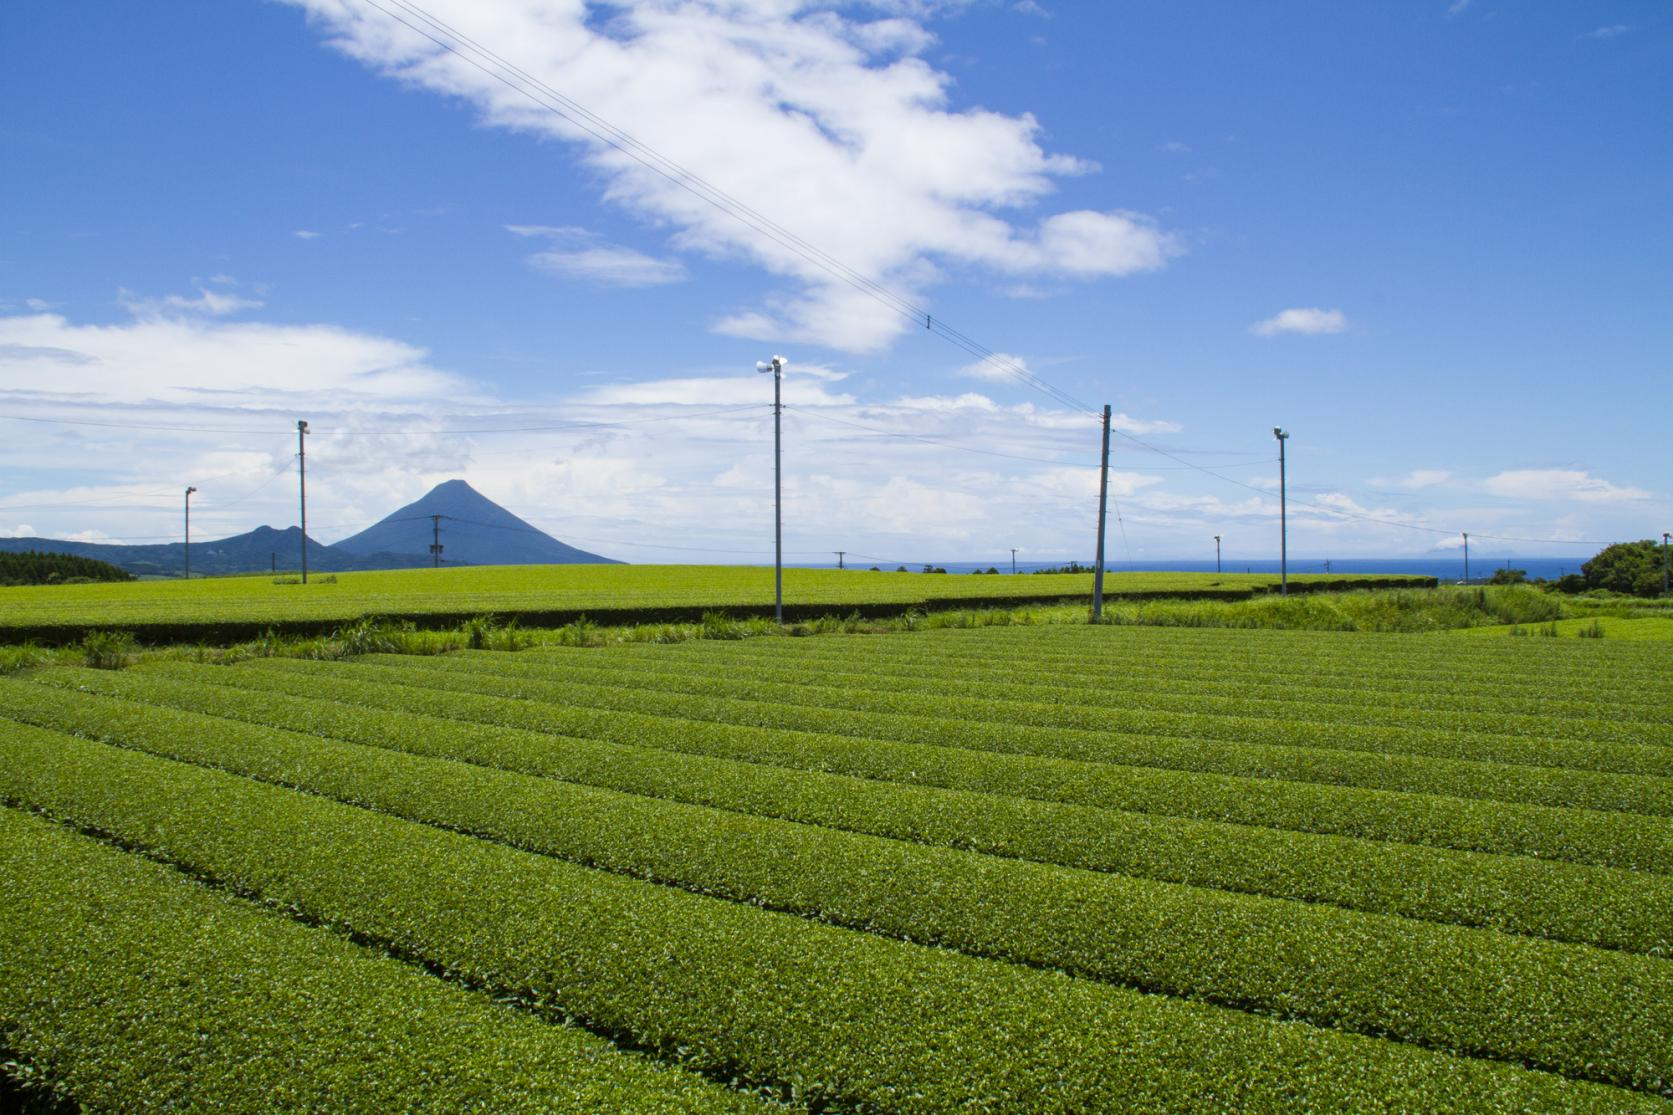 《Virtual Tour Ⅴ》